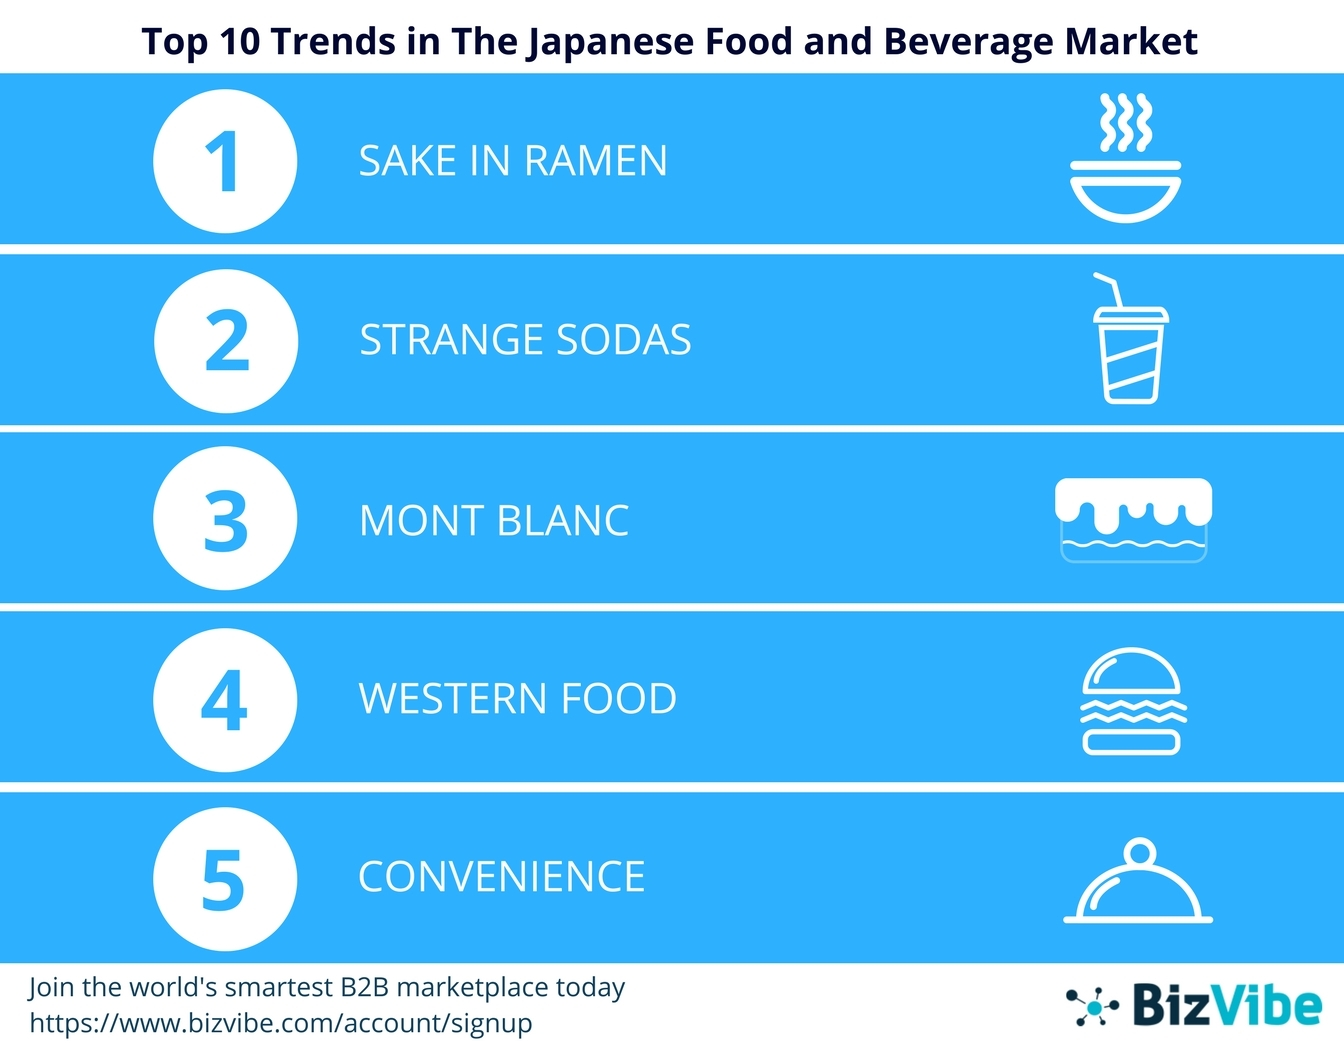 japan packaged food market trends Being the largest economy in the world, the us market provides sizeable opportunities for expansion of the organic food industry some of the major factors contributing towards the growth of this market are increased concerns of people towards health issues, environmental protection, food safety, animal welfare, and increasing use of natural and organic products.